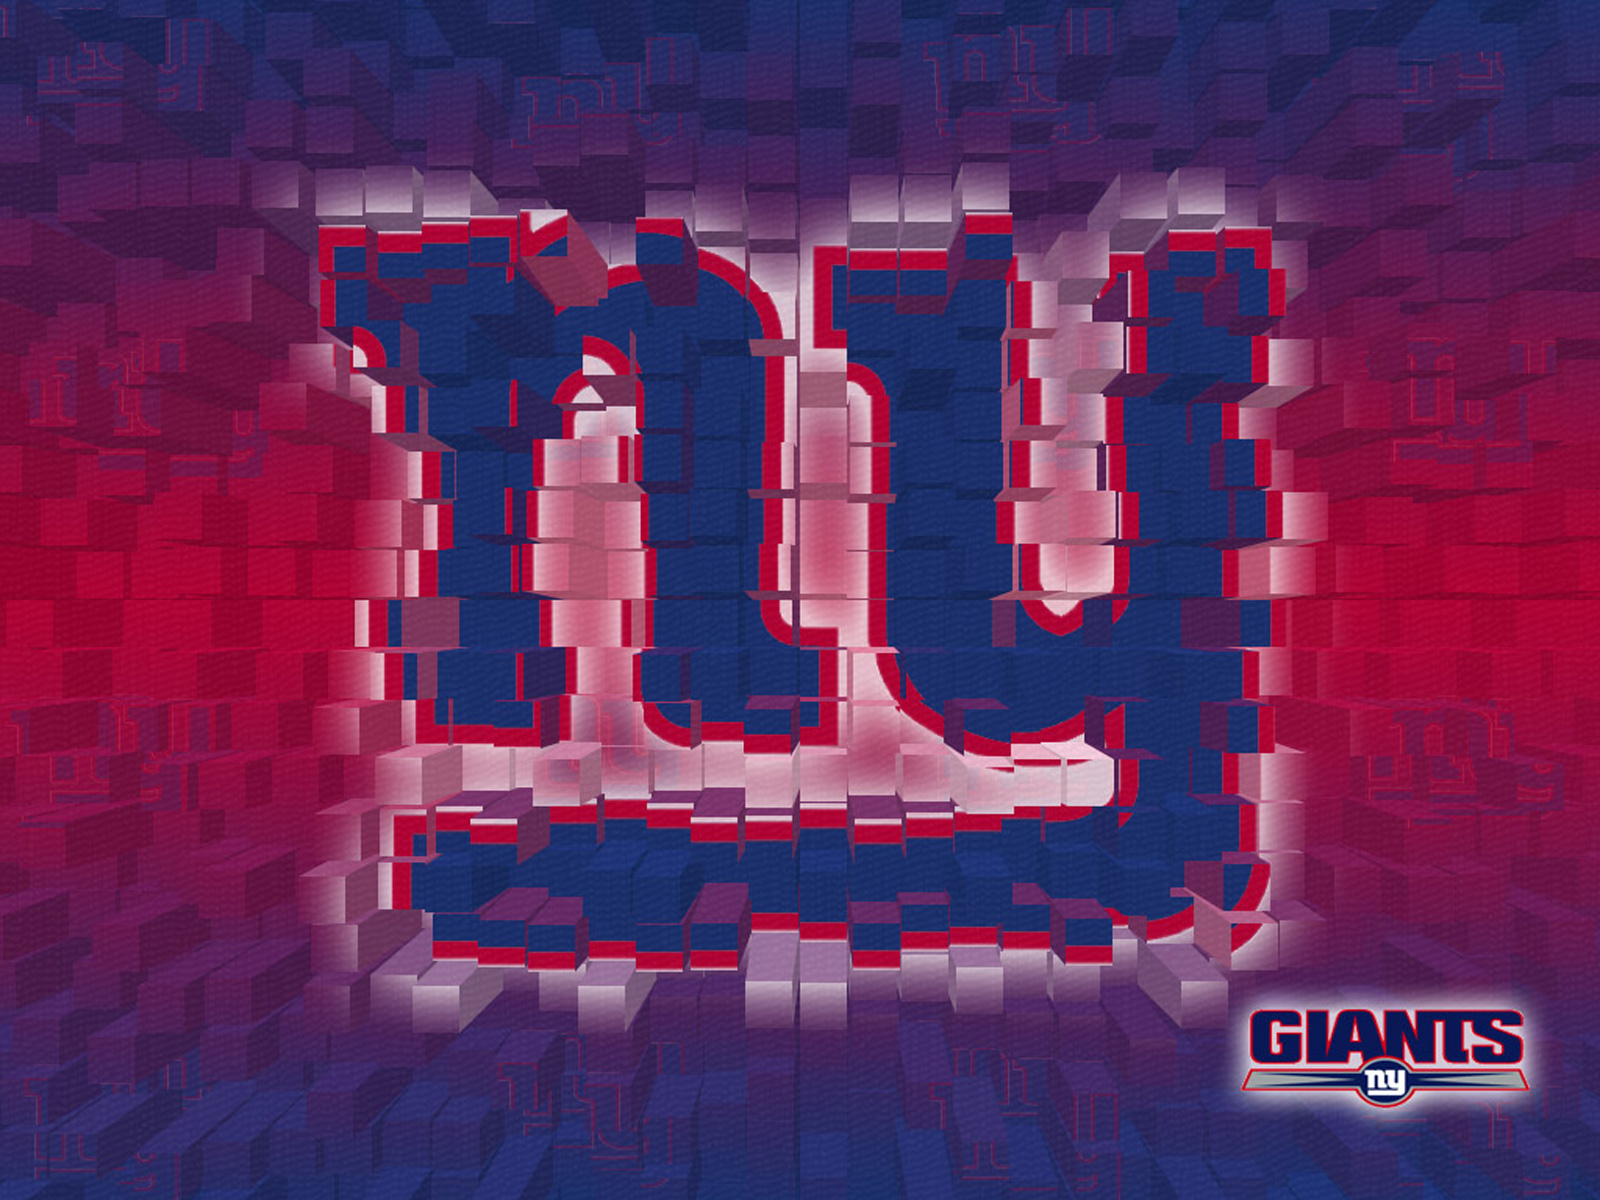 http://2.bp.blogspot.com/_SPY5-z18DBU/TToPEYUYGJI/AAAAAAAAAkY/6-vyWbs3DUk/s1600/new_york_giants_3d_wallpaper_1600x1200.jpeg